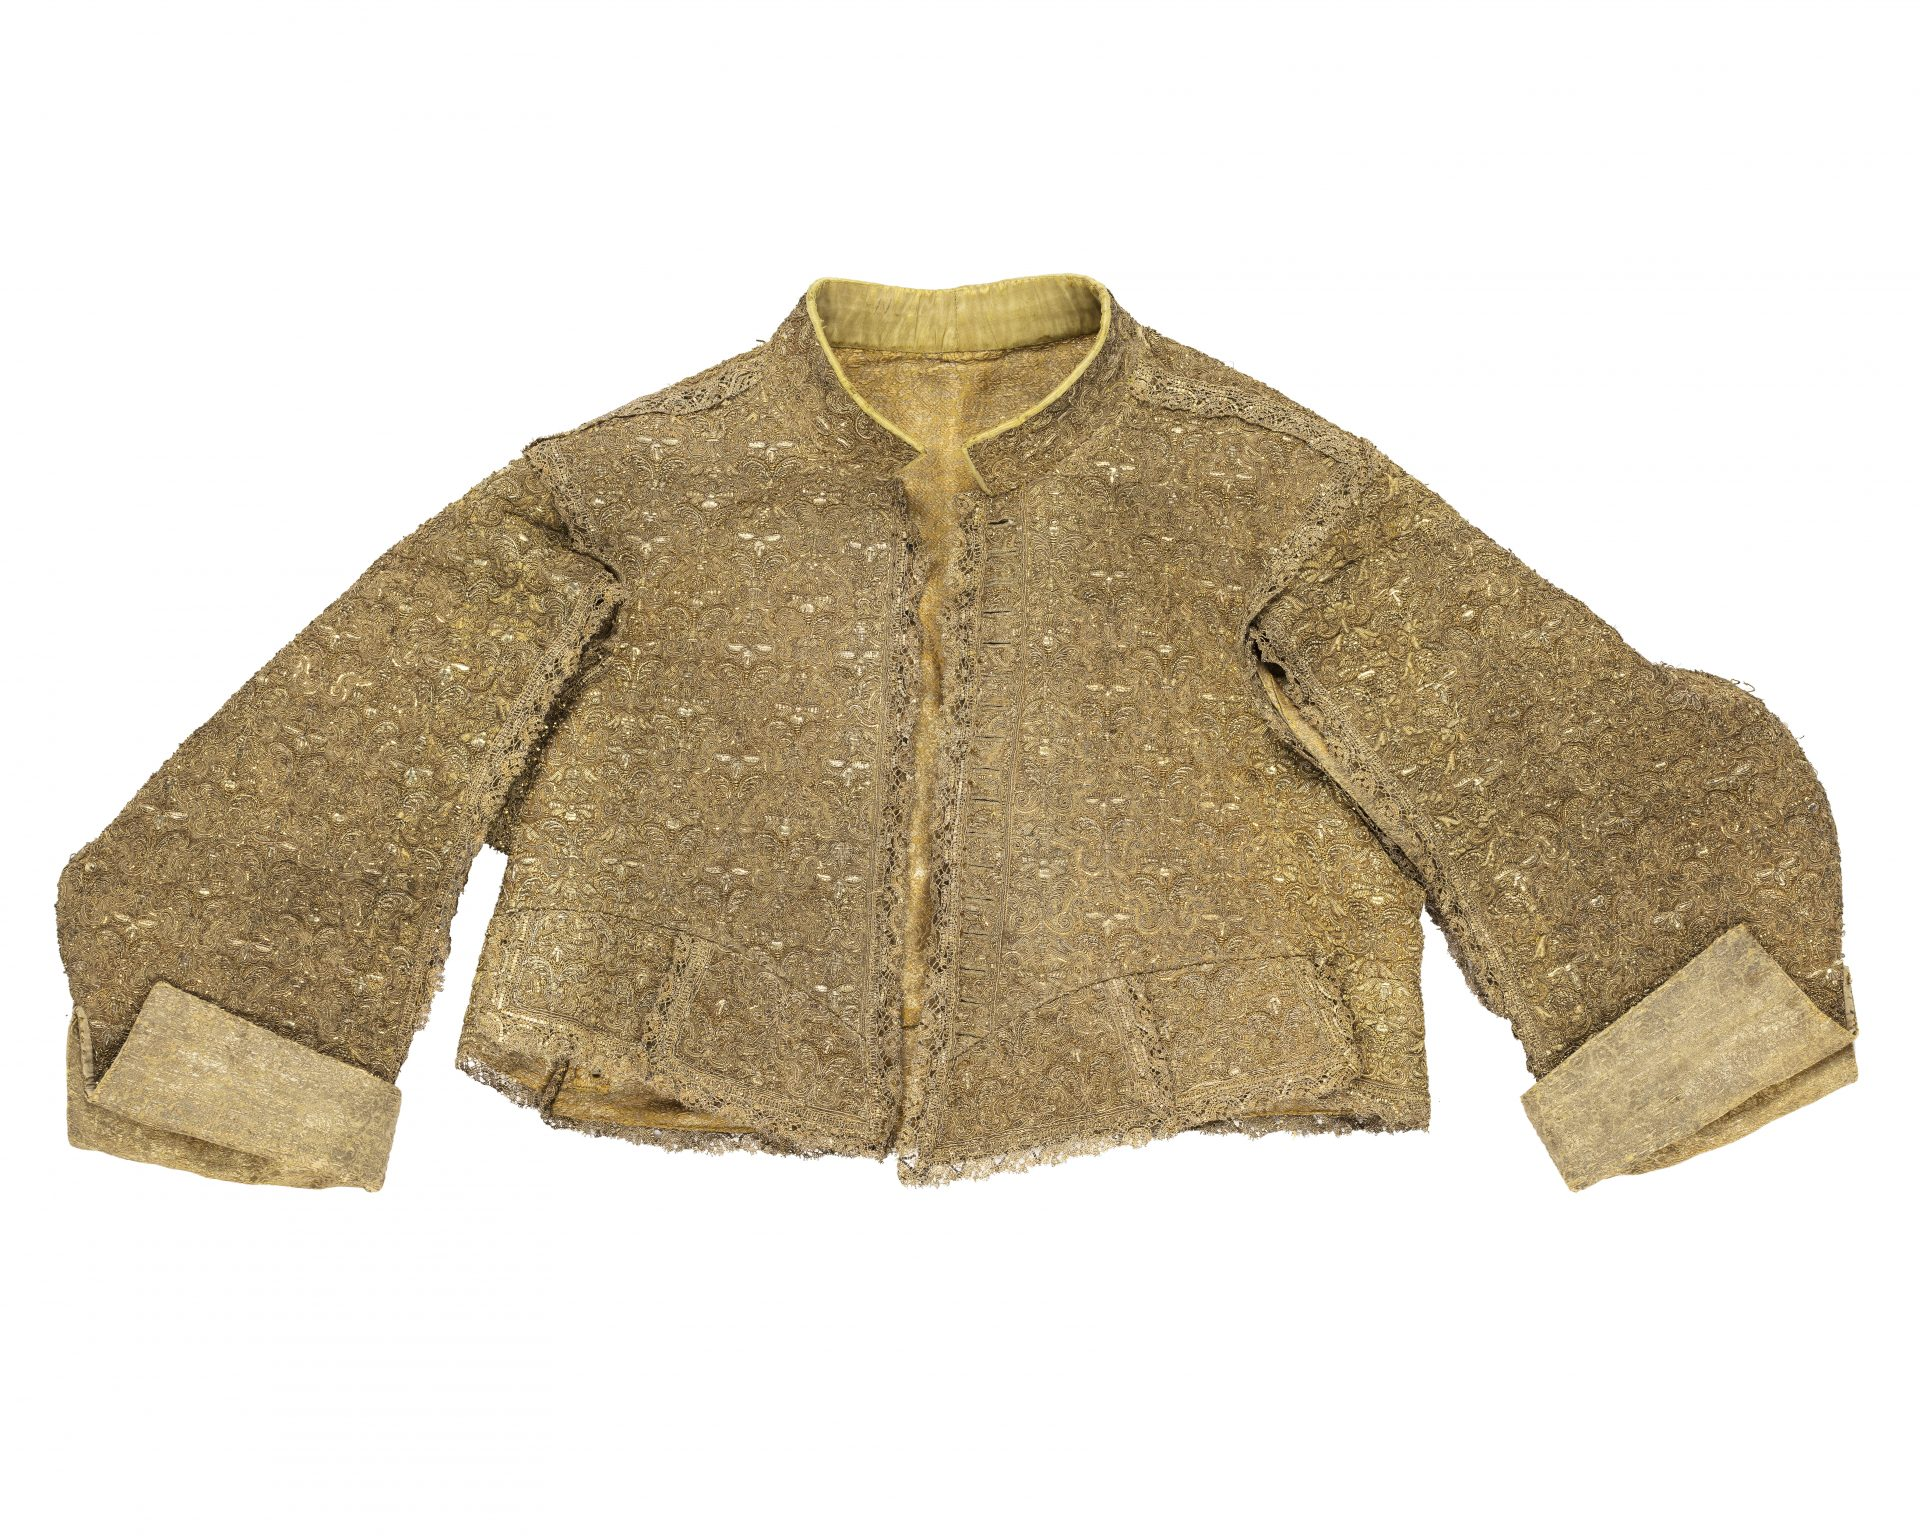 Jacket from the 17th century.